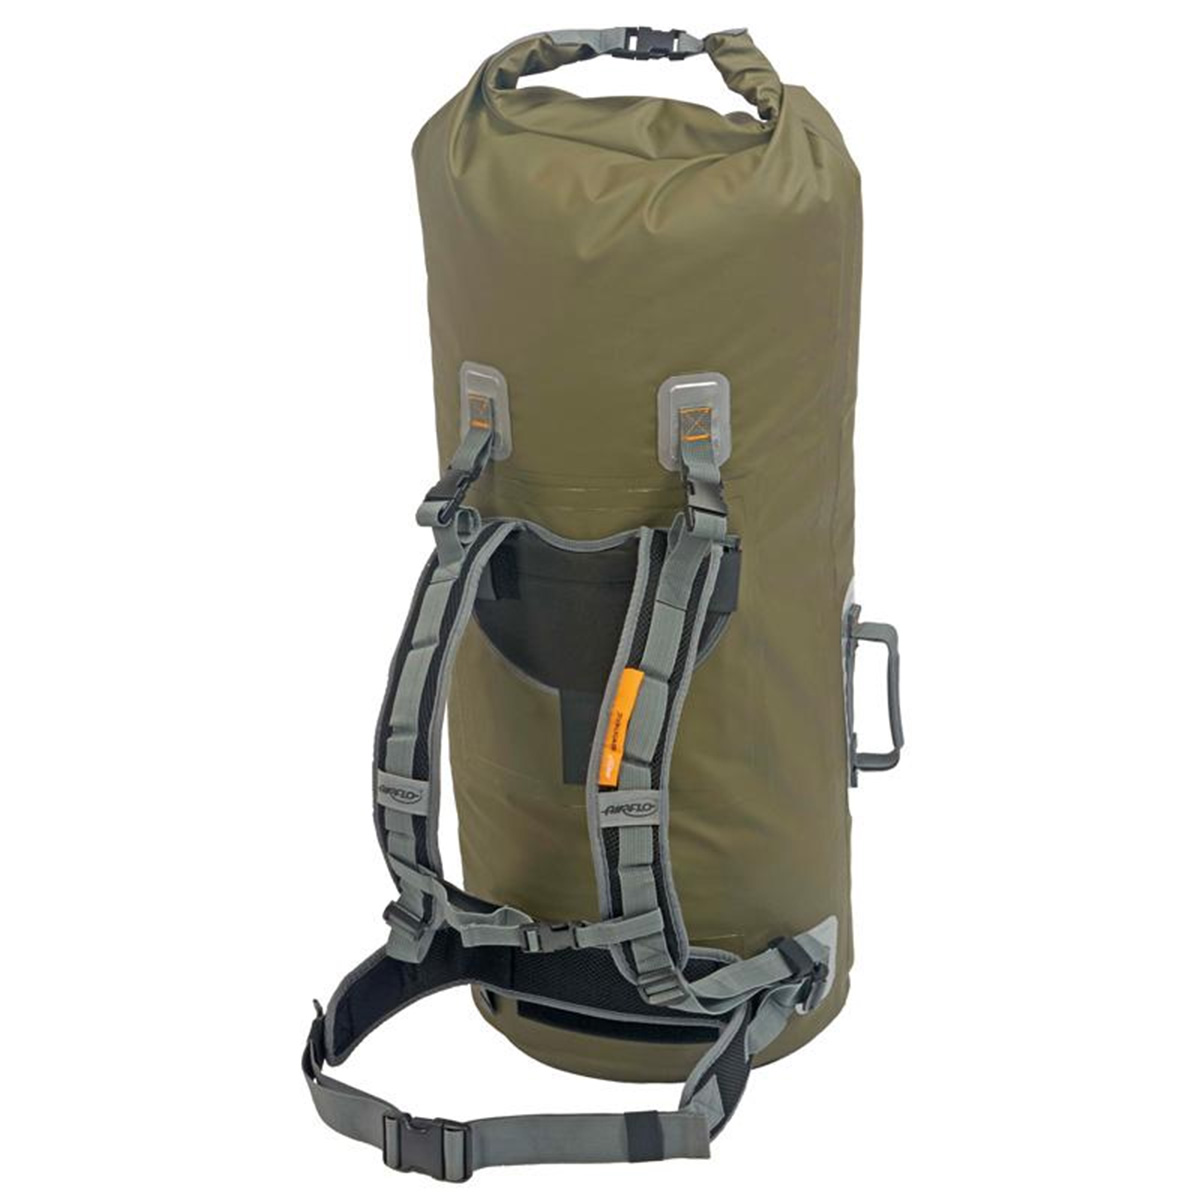 Airflo fly dri 60 litre roll top back pack tube fishing for Fly fishing luggage